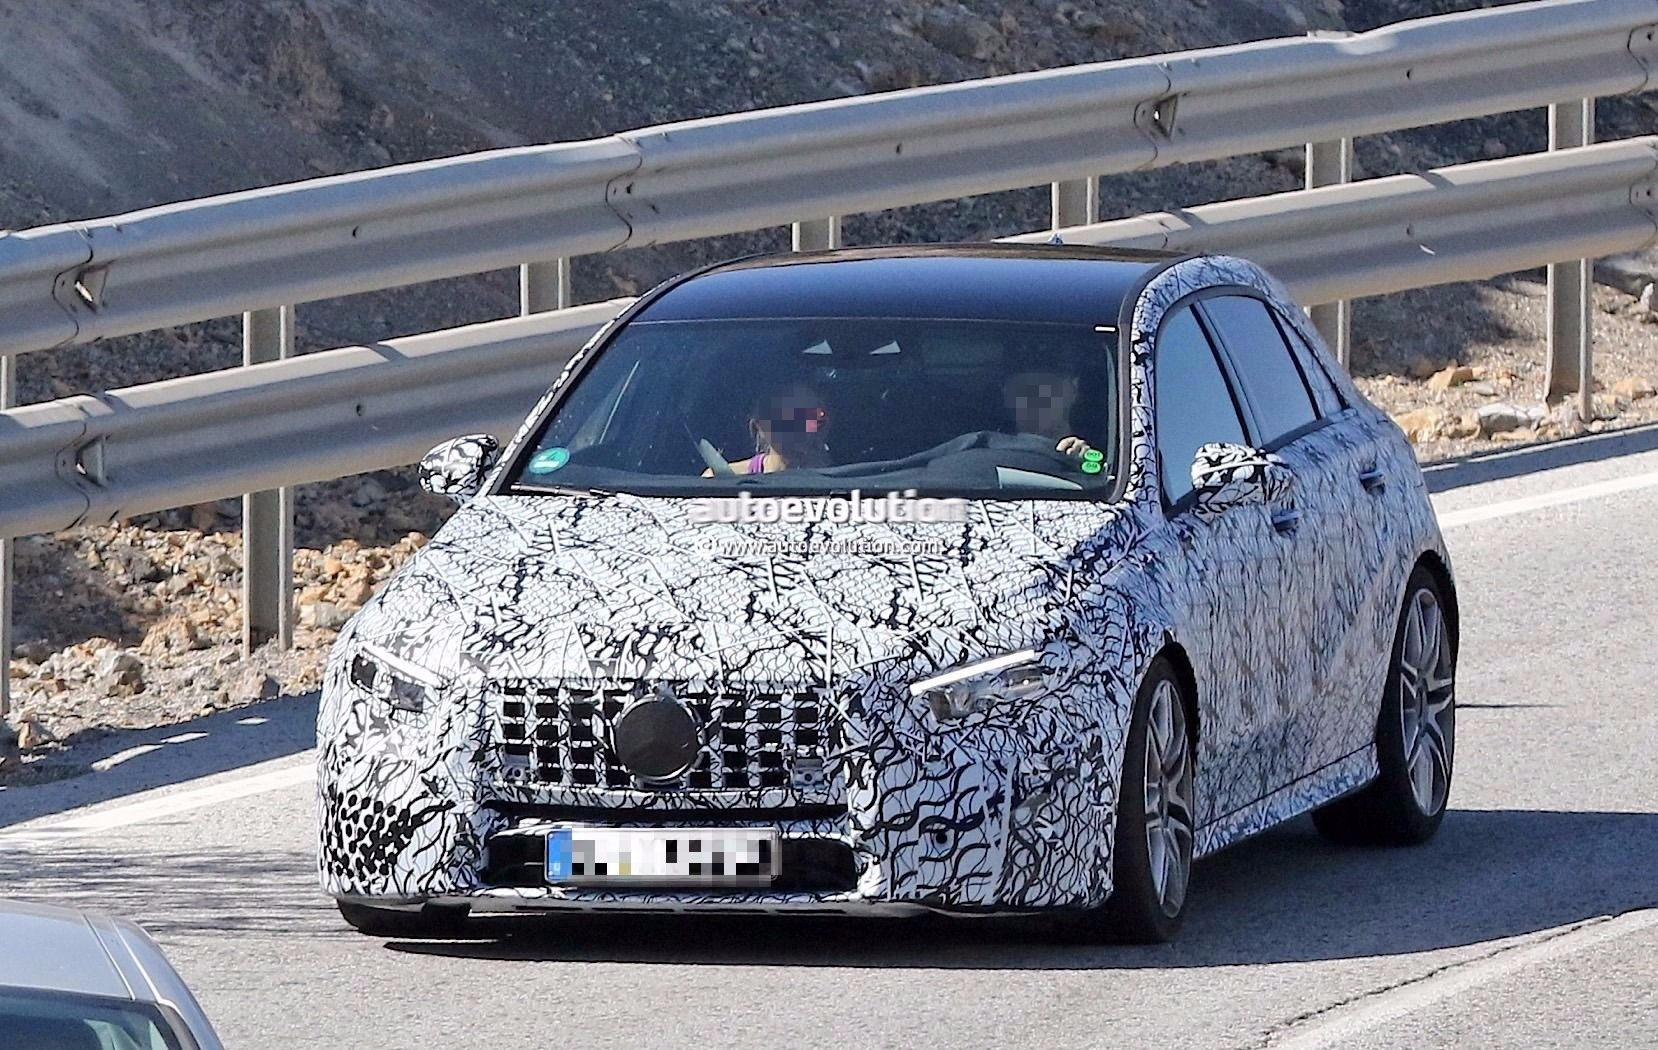 Spyshots: 2019 Mercedes-AMG A45 Looks Ready to Dethrone The